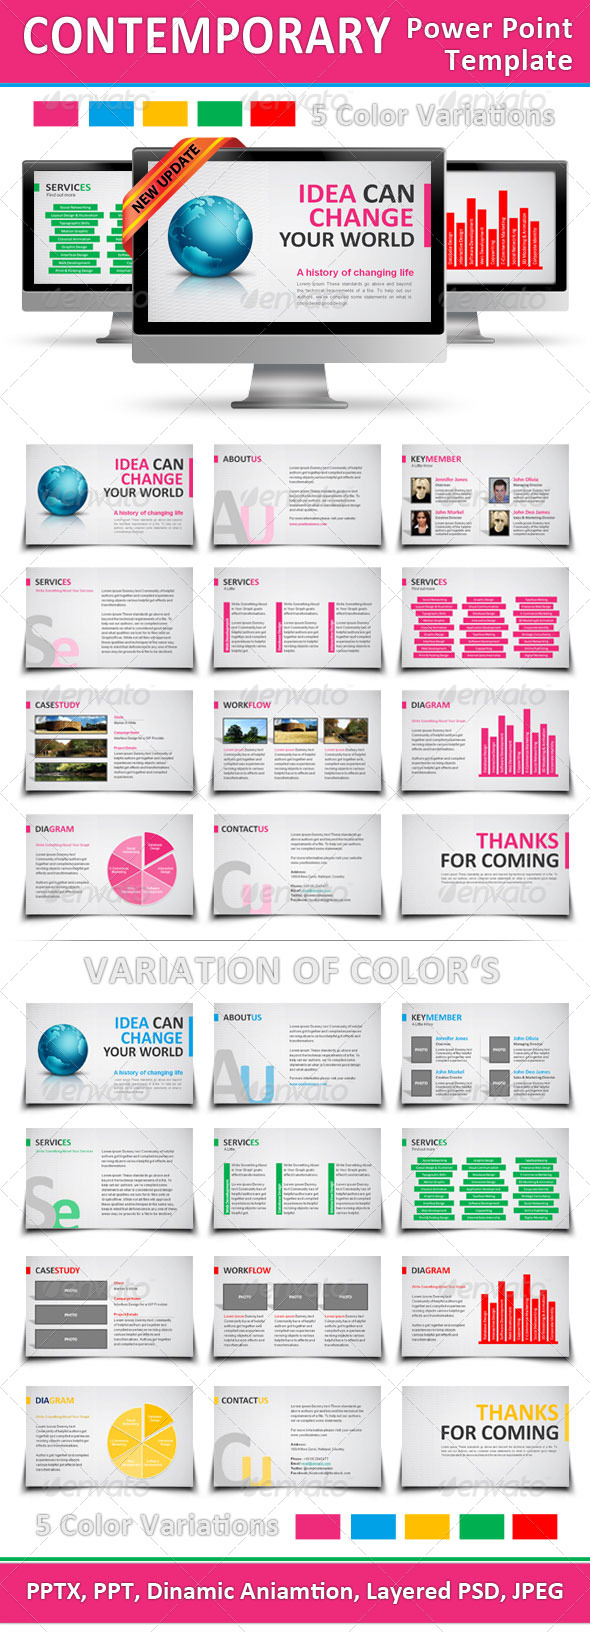 GraphicRiver Contemporary Power Point Template 165455